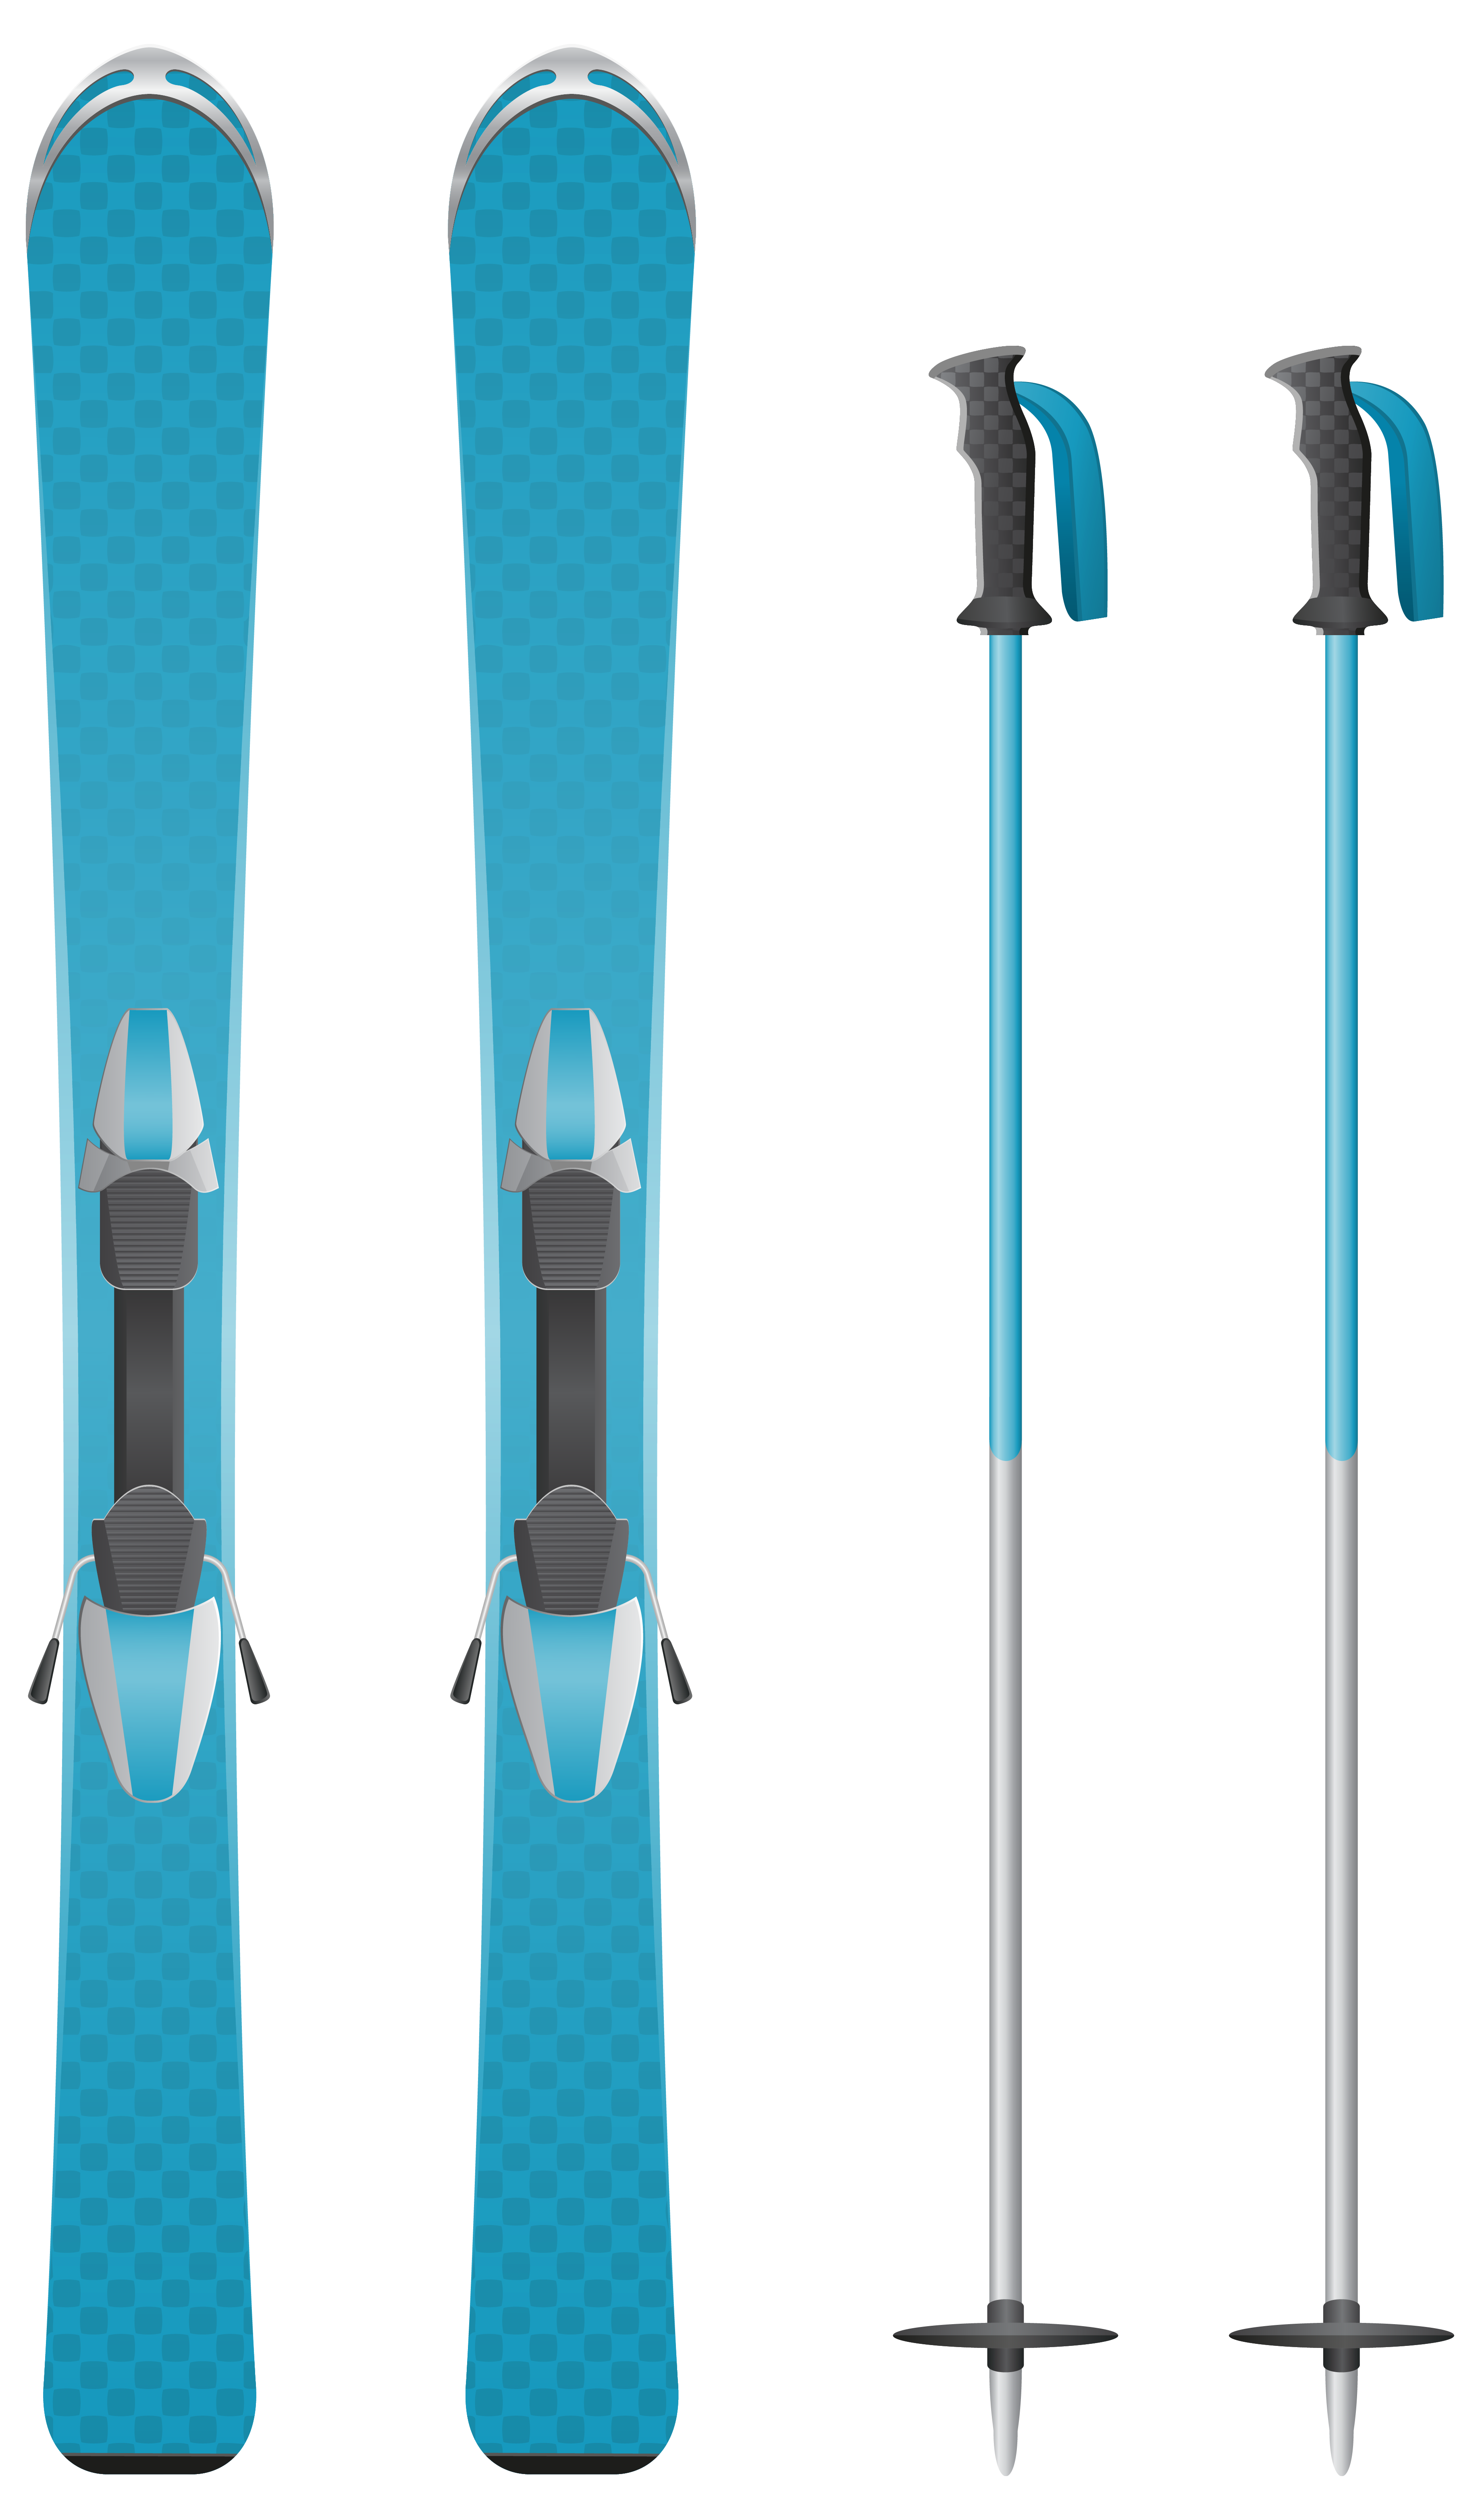 Skiing clipart transparent background. Blue skis png image